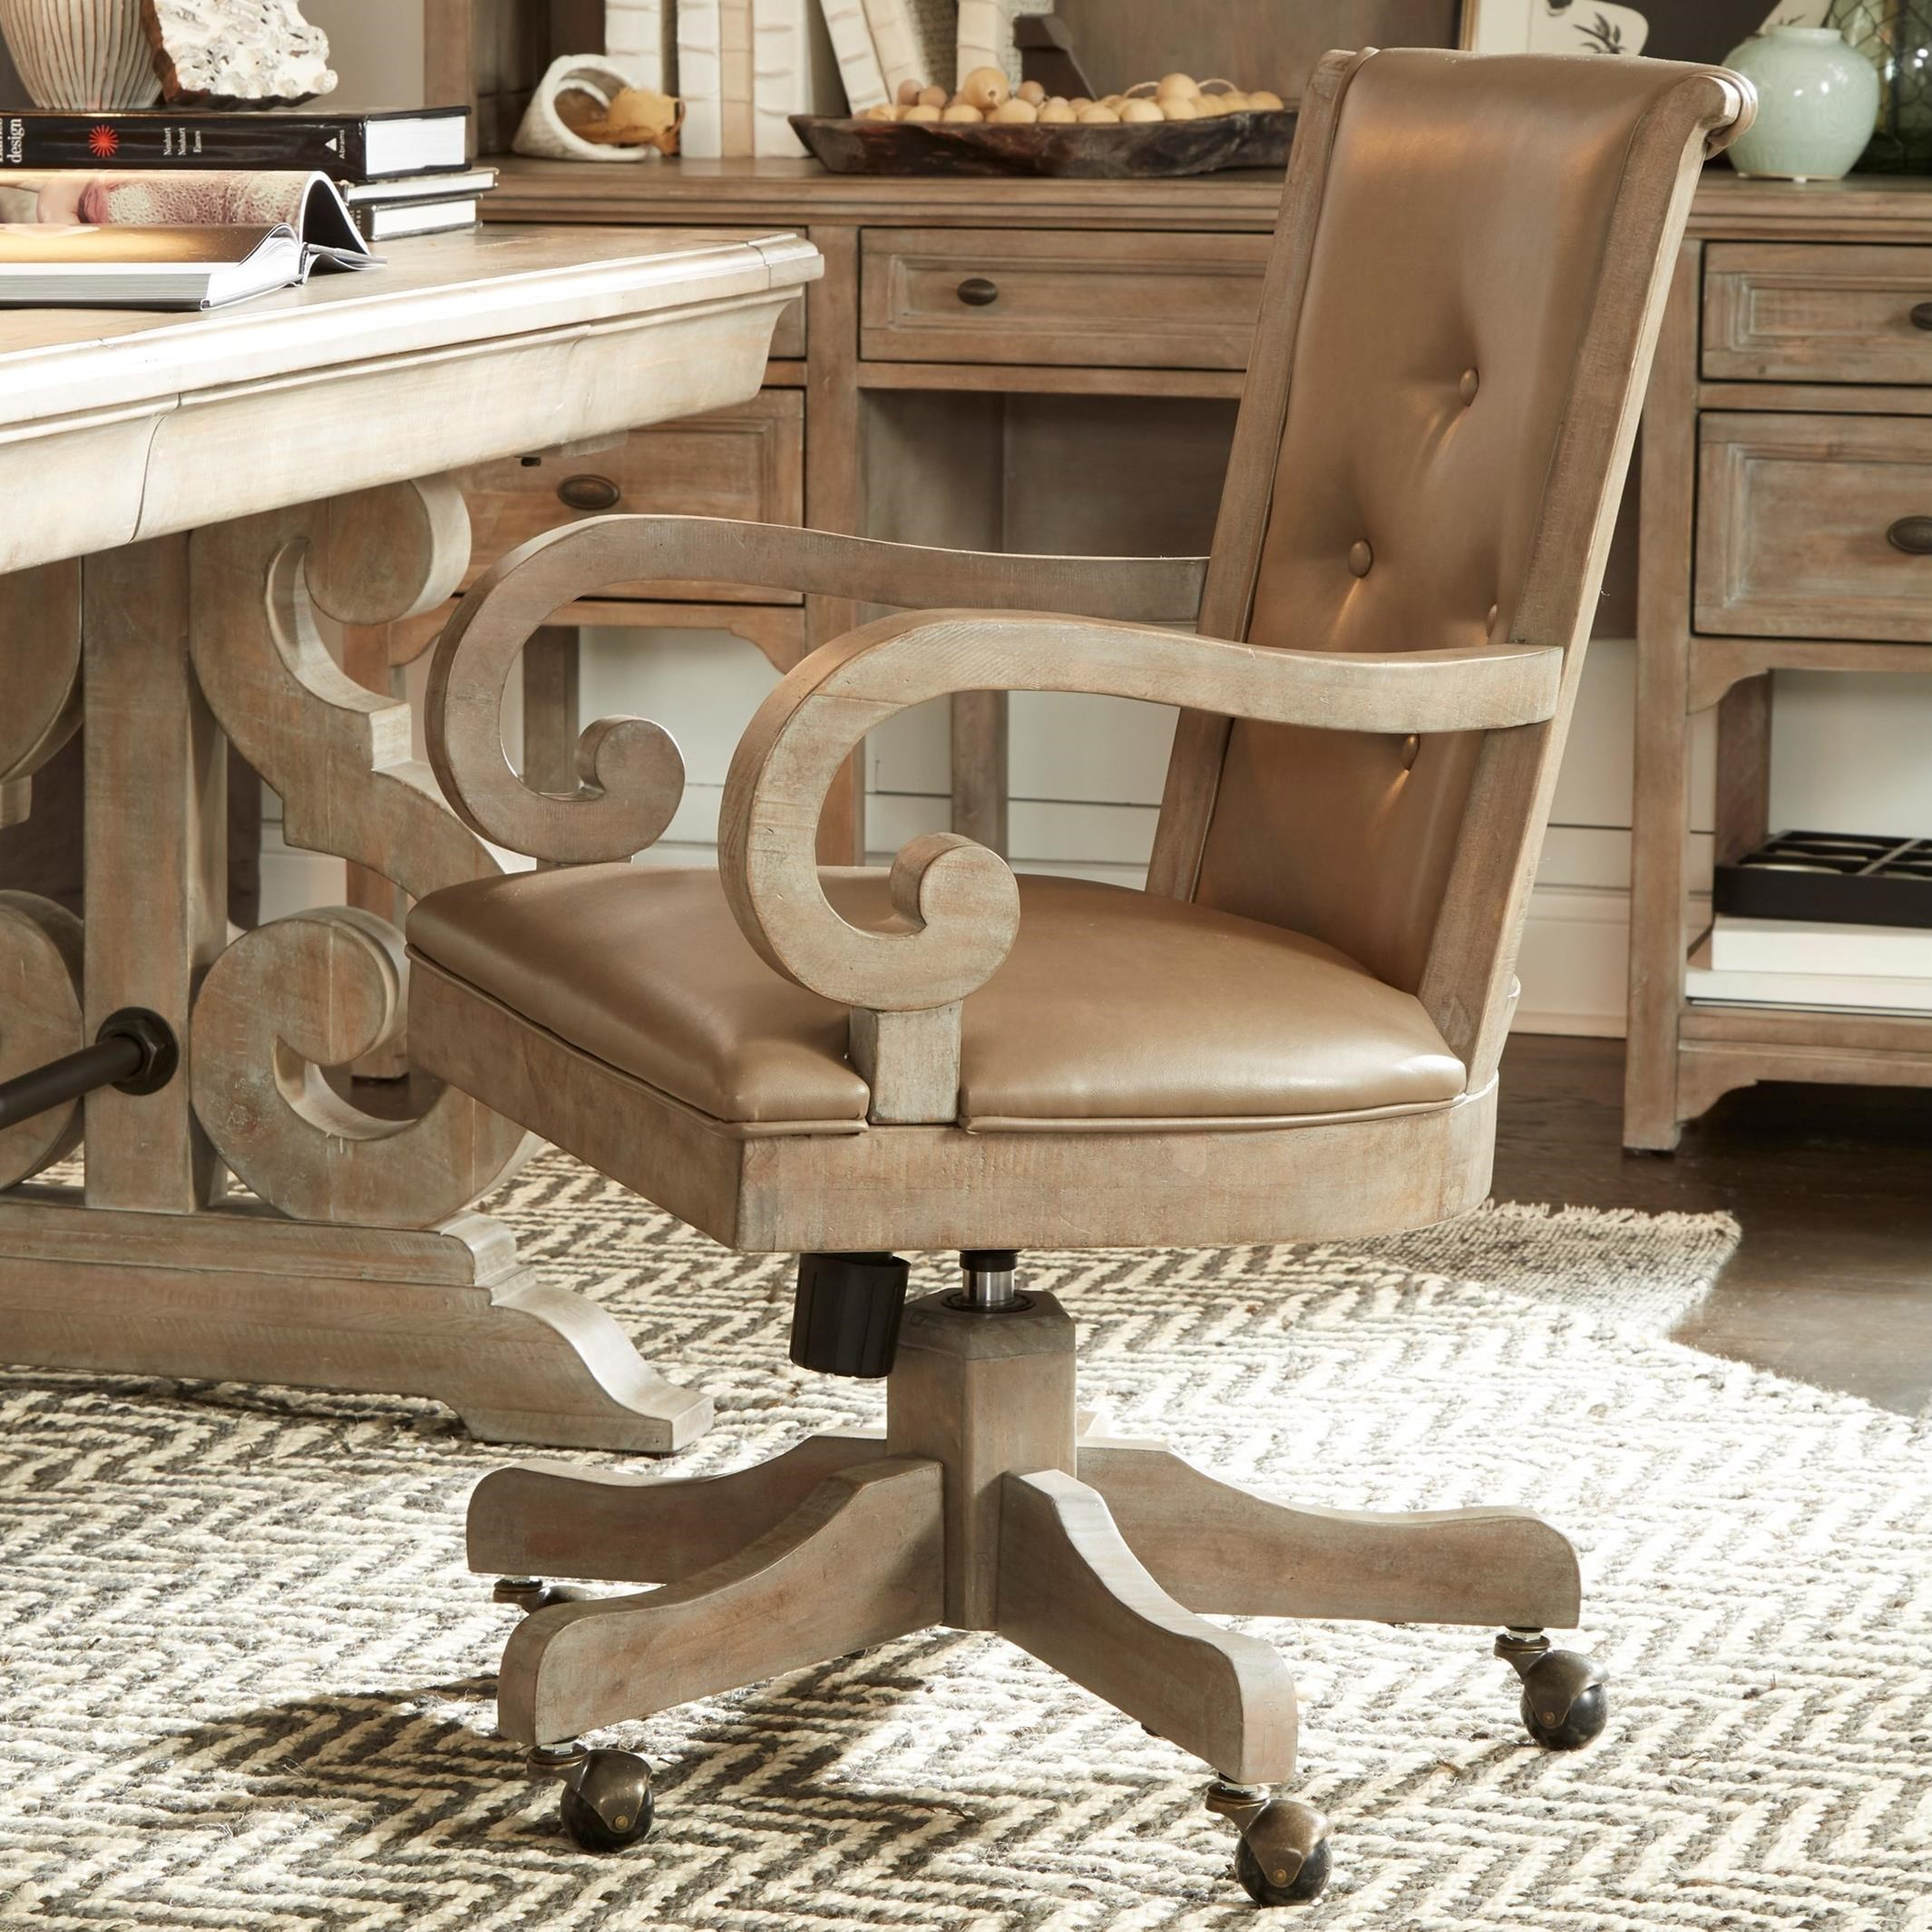 Tinley Park Upholstered Swivel Chair by Magnussen Home at Baer's Furniture